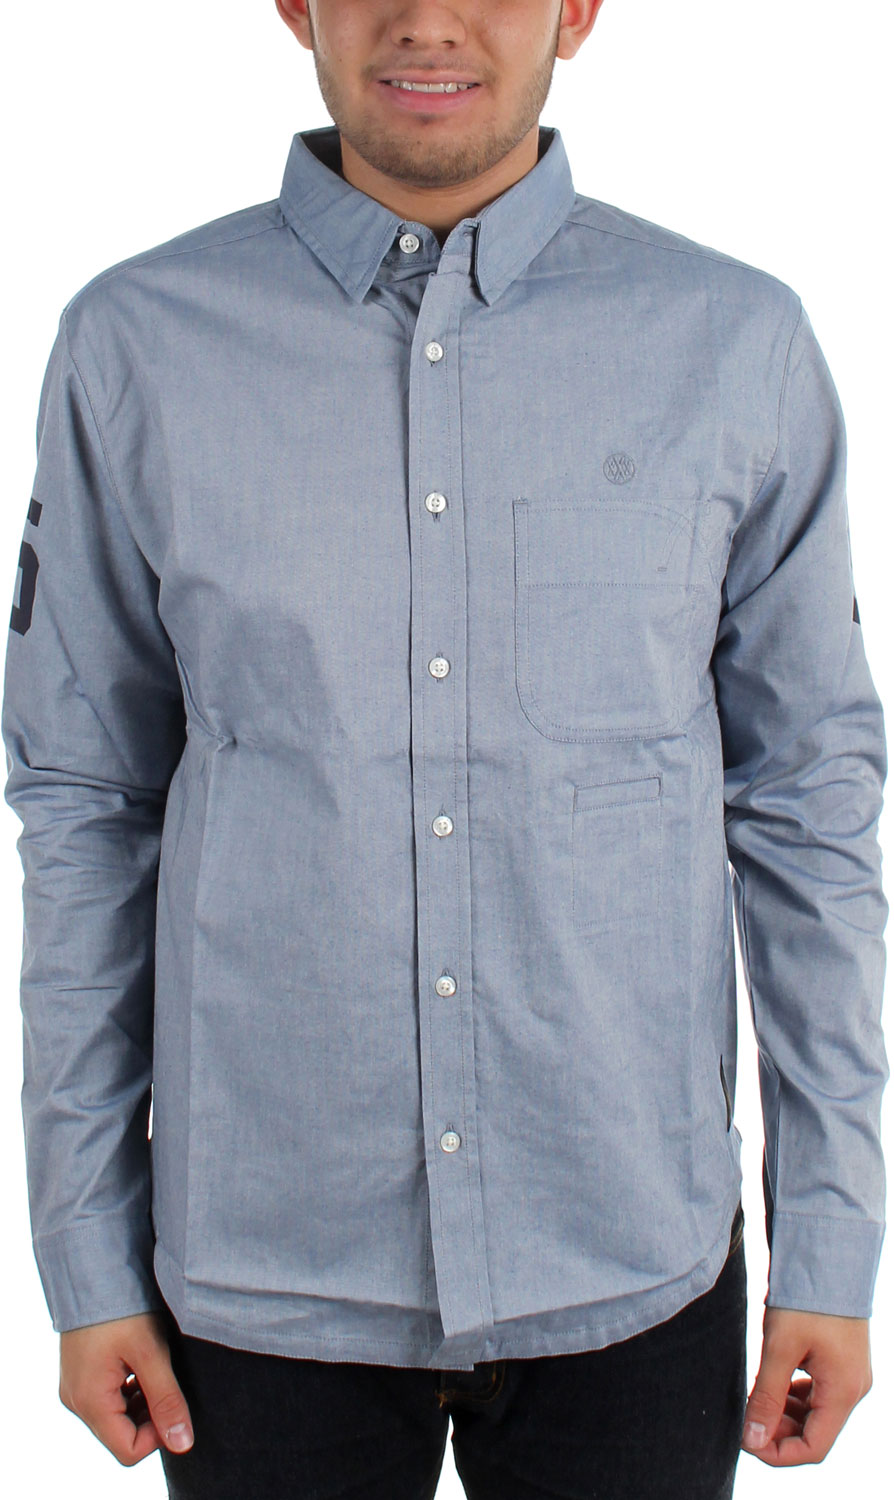 Image of 10 Deep - Mens DXXP 95 Woven